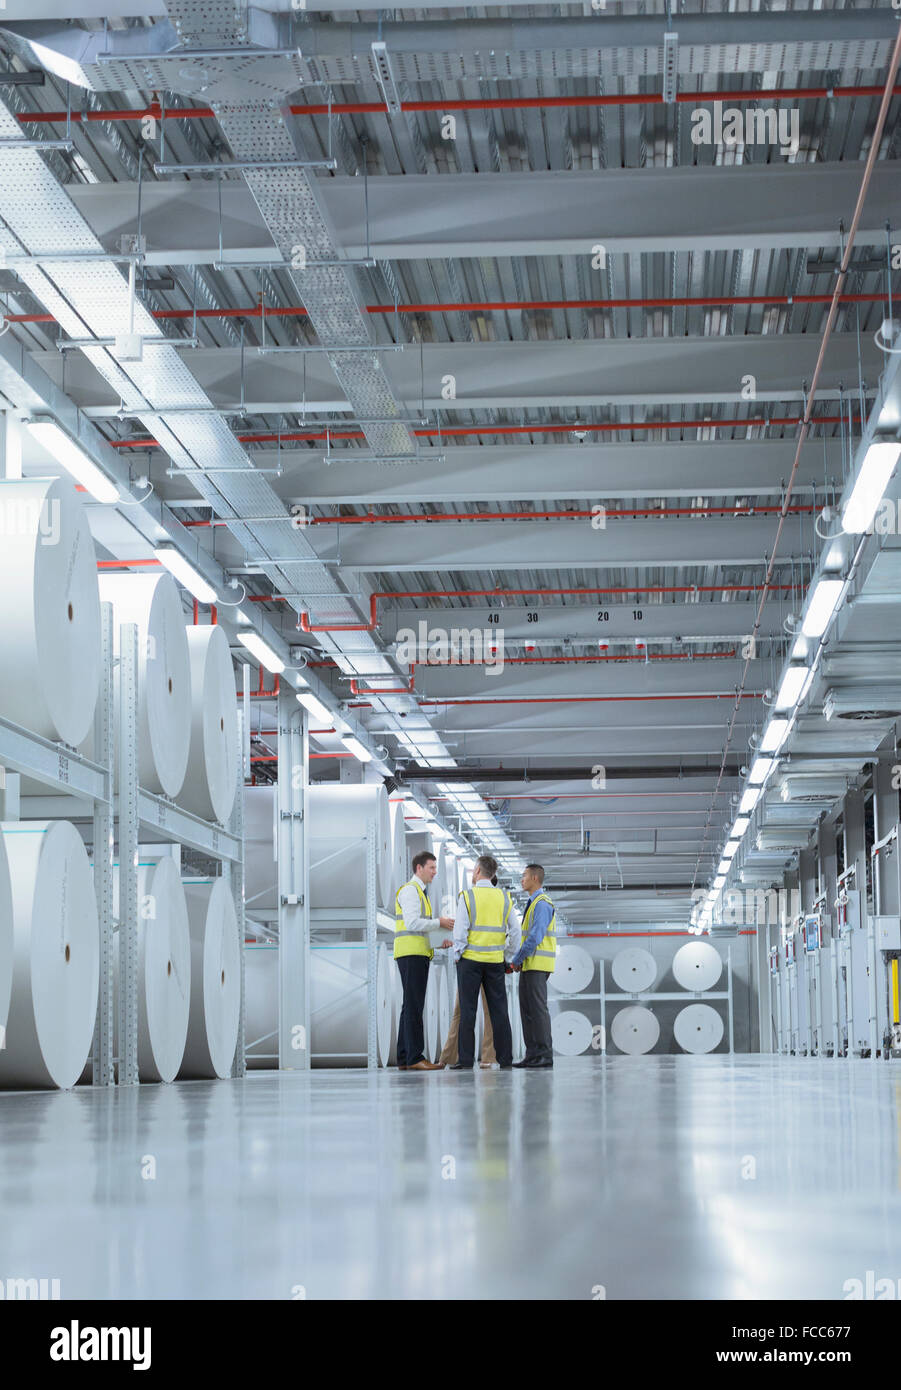 Workers in reflective clothing talking near large paper spools in printing plant - Stock Image